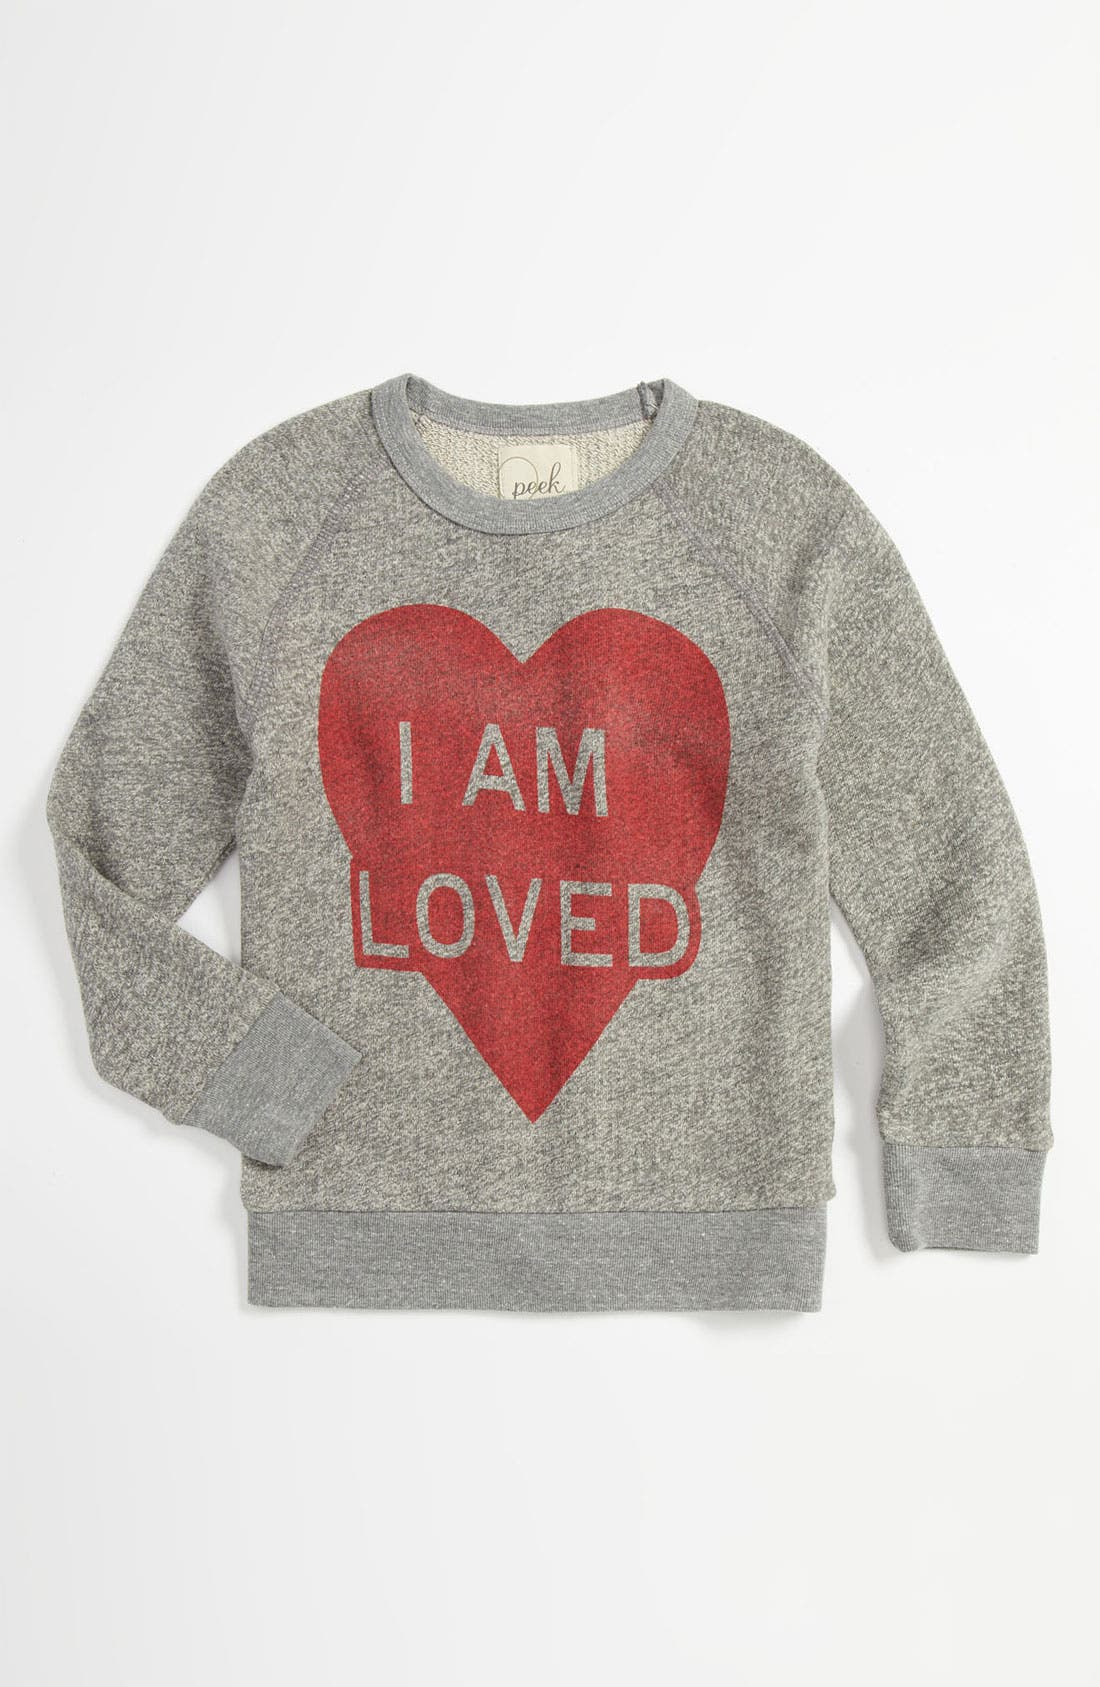 Alternate Image 1 Selected - Peek 'I Am Loved' Sweater (Little Girls & Big Girls)